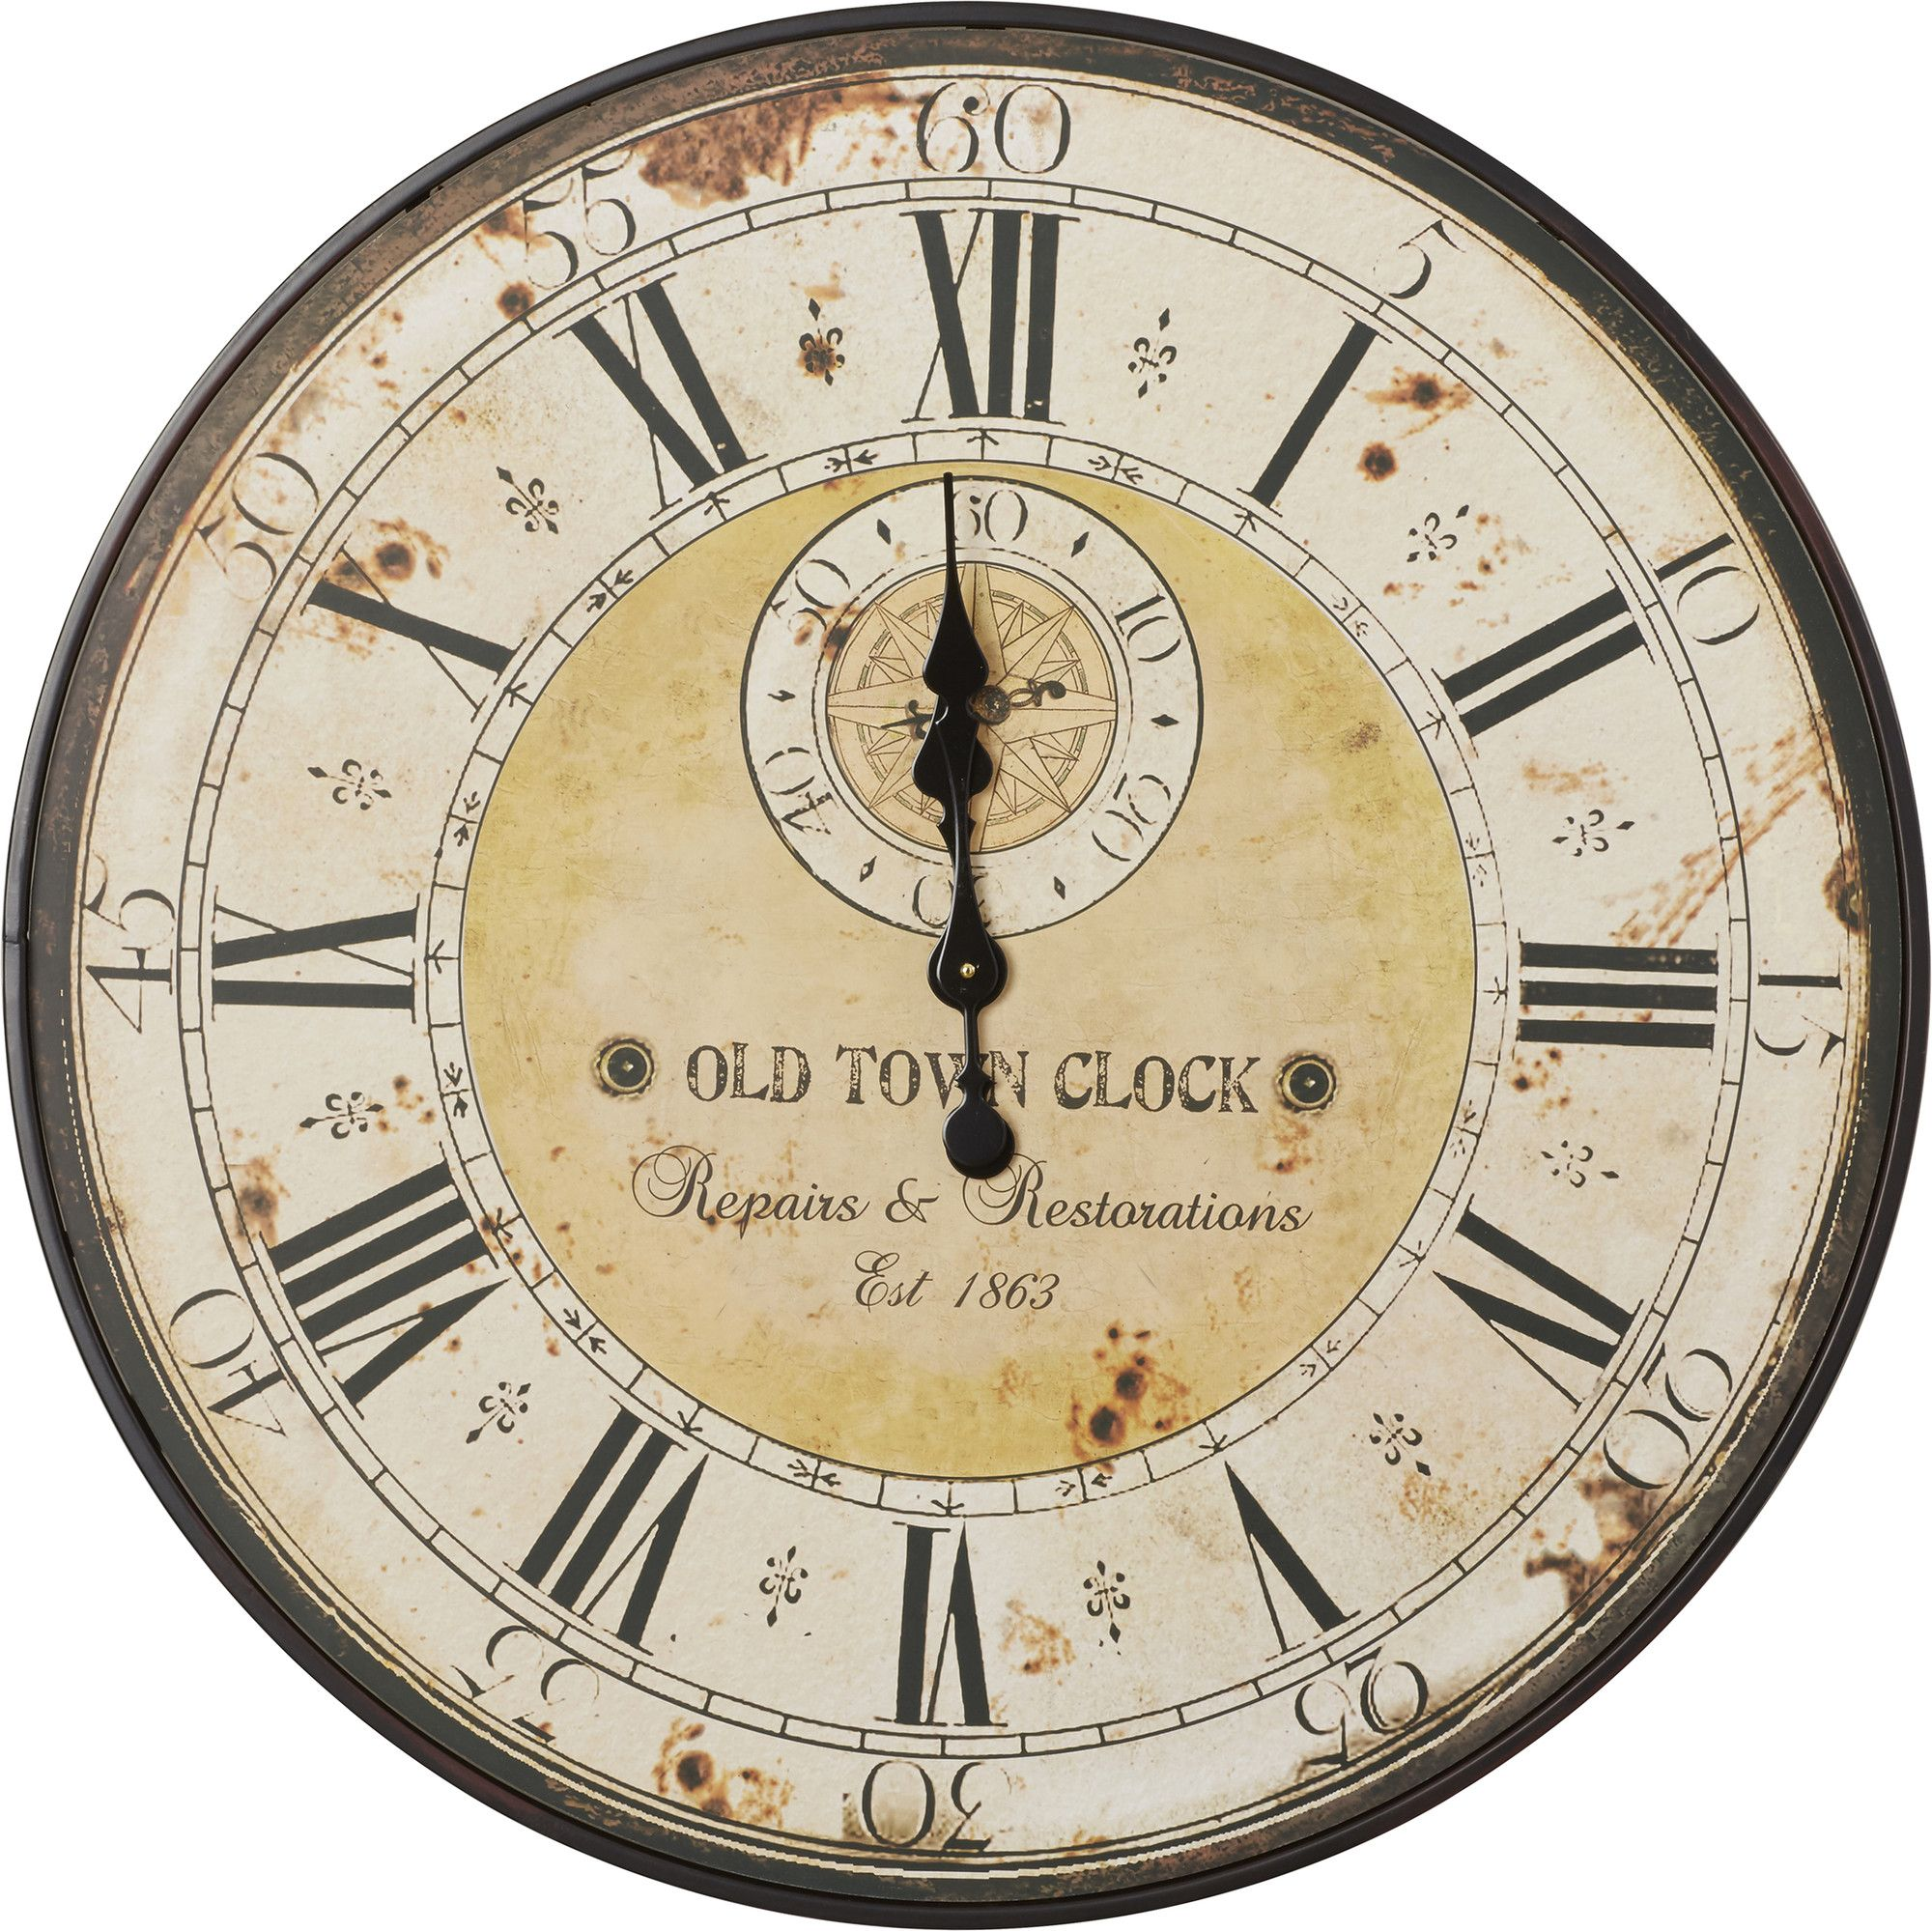 Antique Wall Clock | Products | Pinterest | Antique wall clocks ...